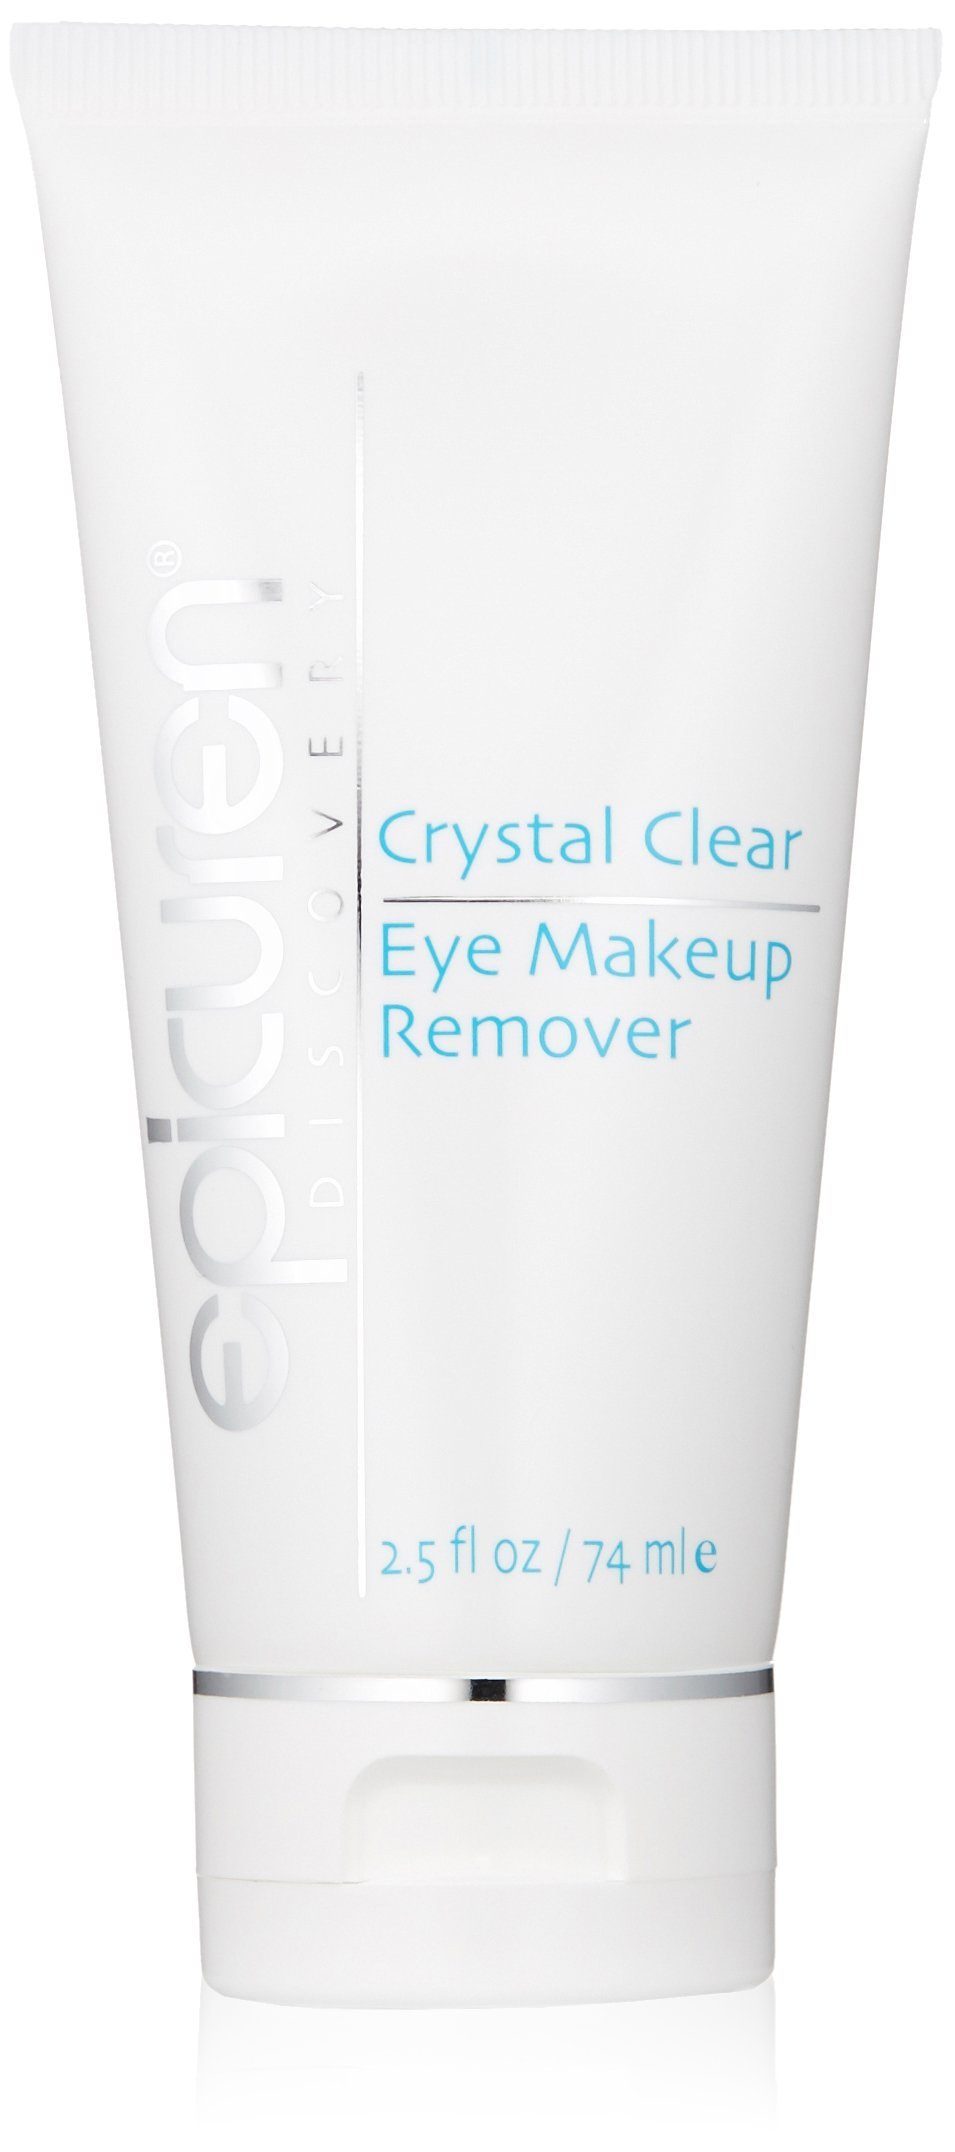 Epicuren Discovery Eye Makeup Remover, 2.5 Fl oz